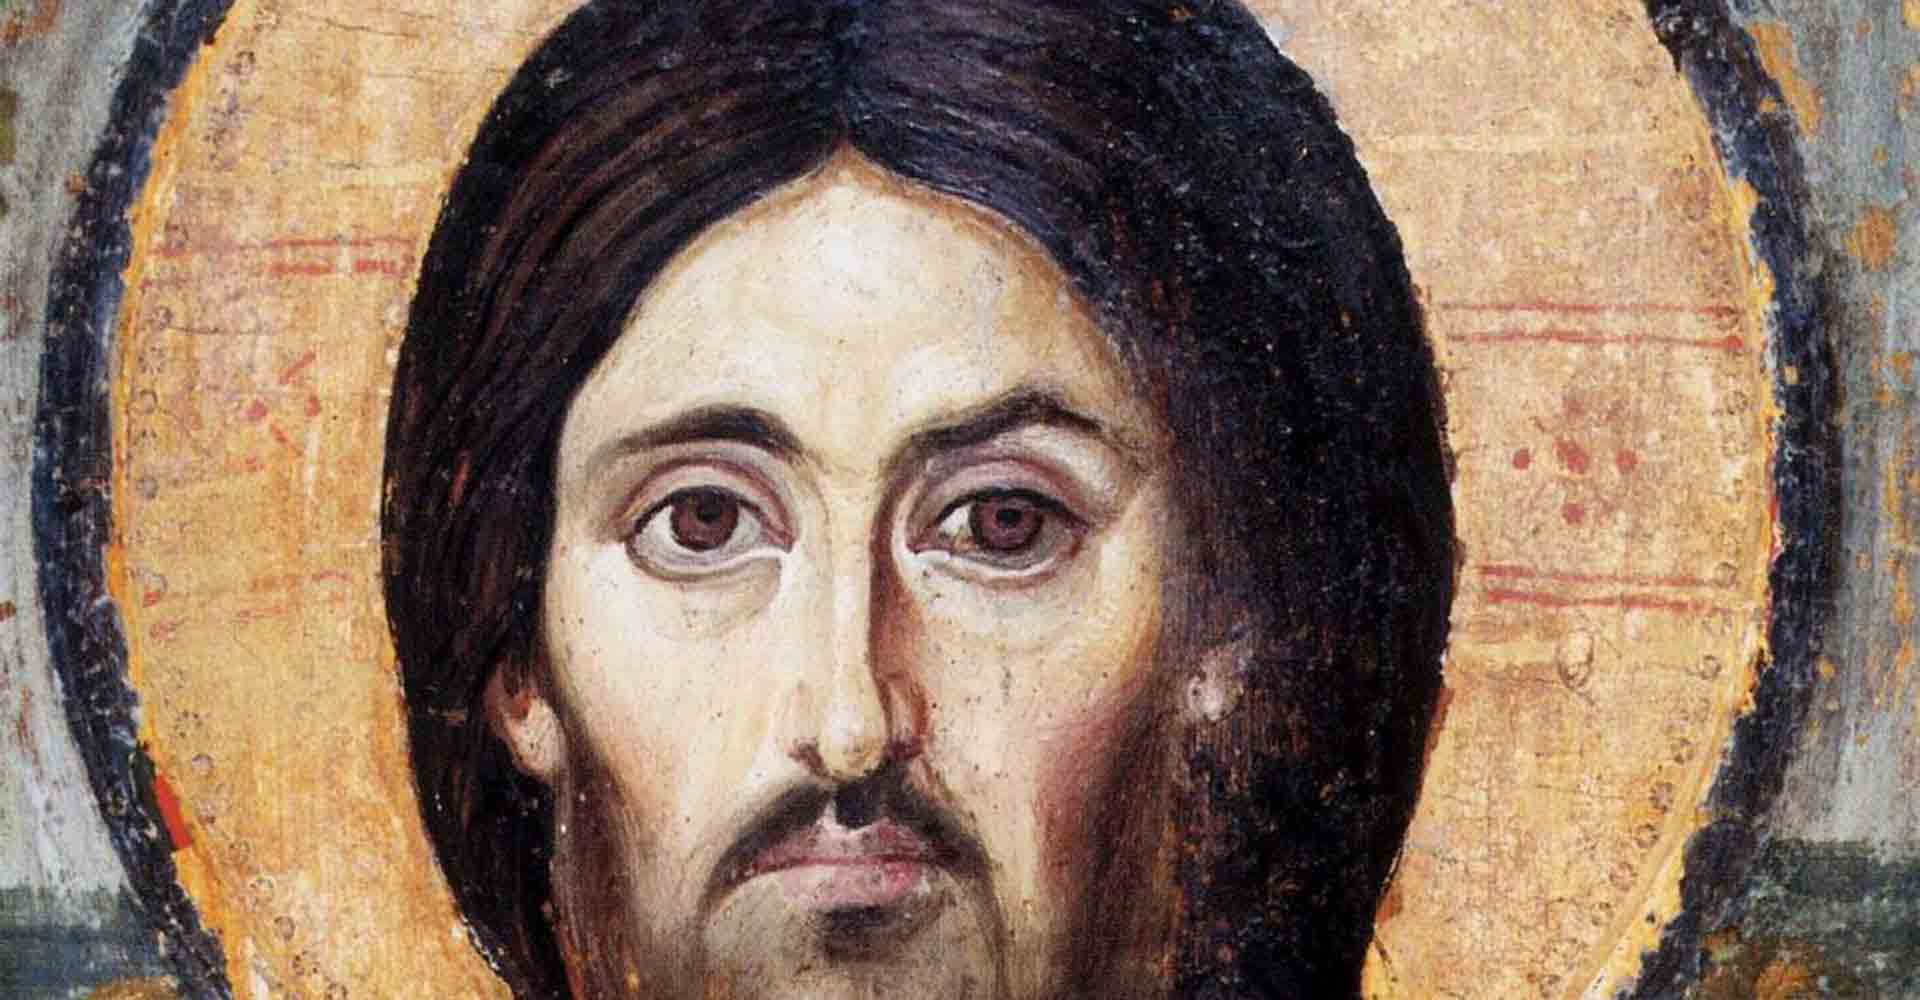 definitive meaning. icon of jesus christ. \u201c definitive meaning i